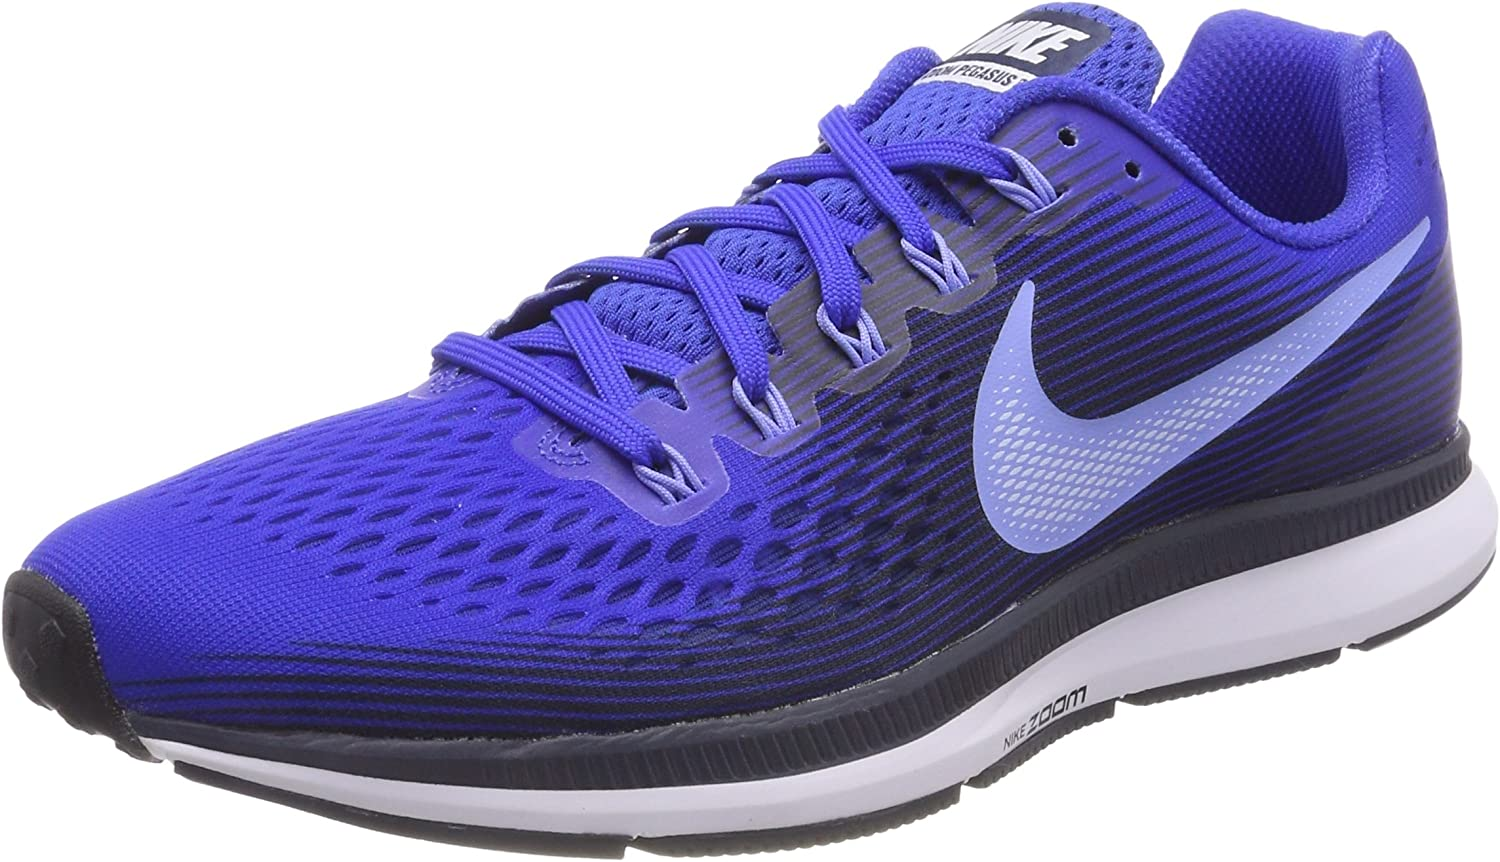 Nike Air Zoom Pegasus 34 Sz 11 Mens Running Hyper Royal Royal Pulse-Obsidian Shoes